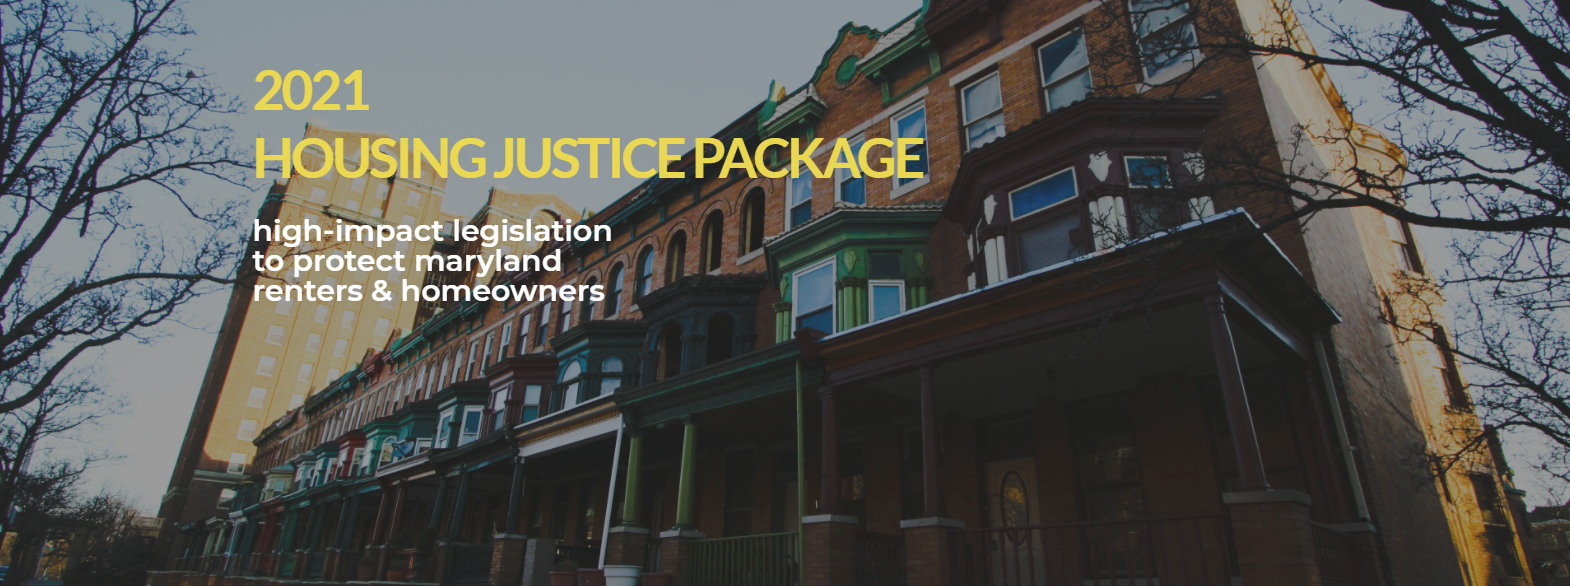 """Row of houses with text """"2021 Housing Justice Package"""""""